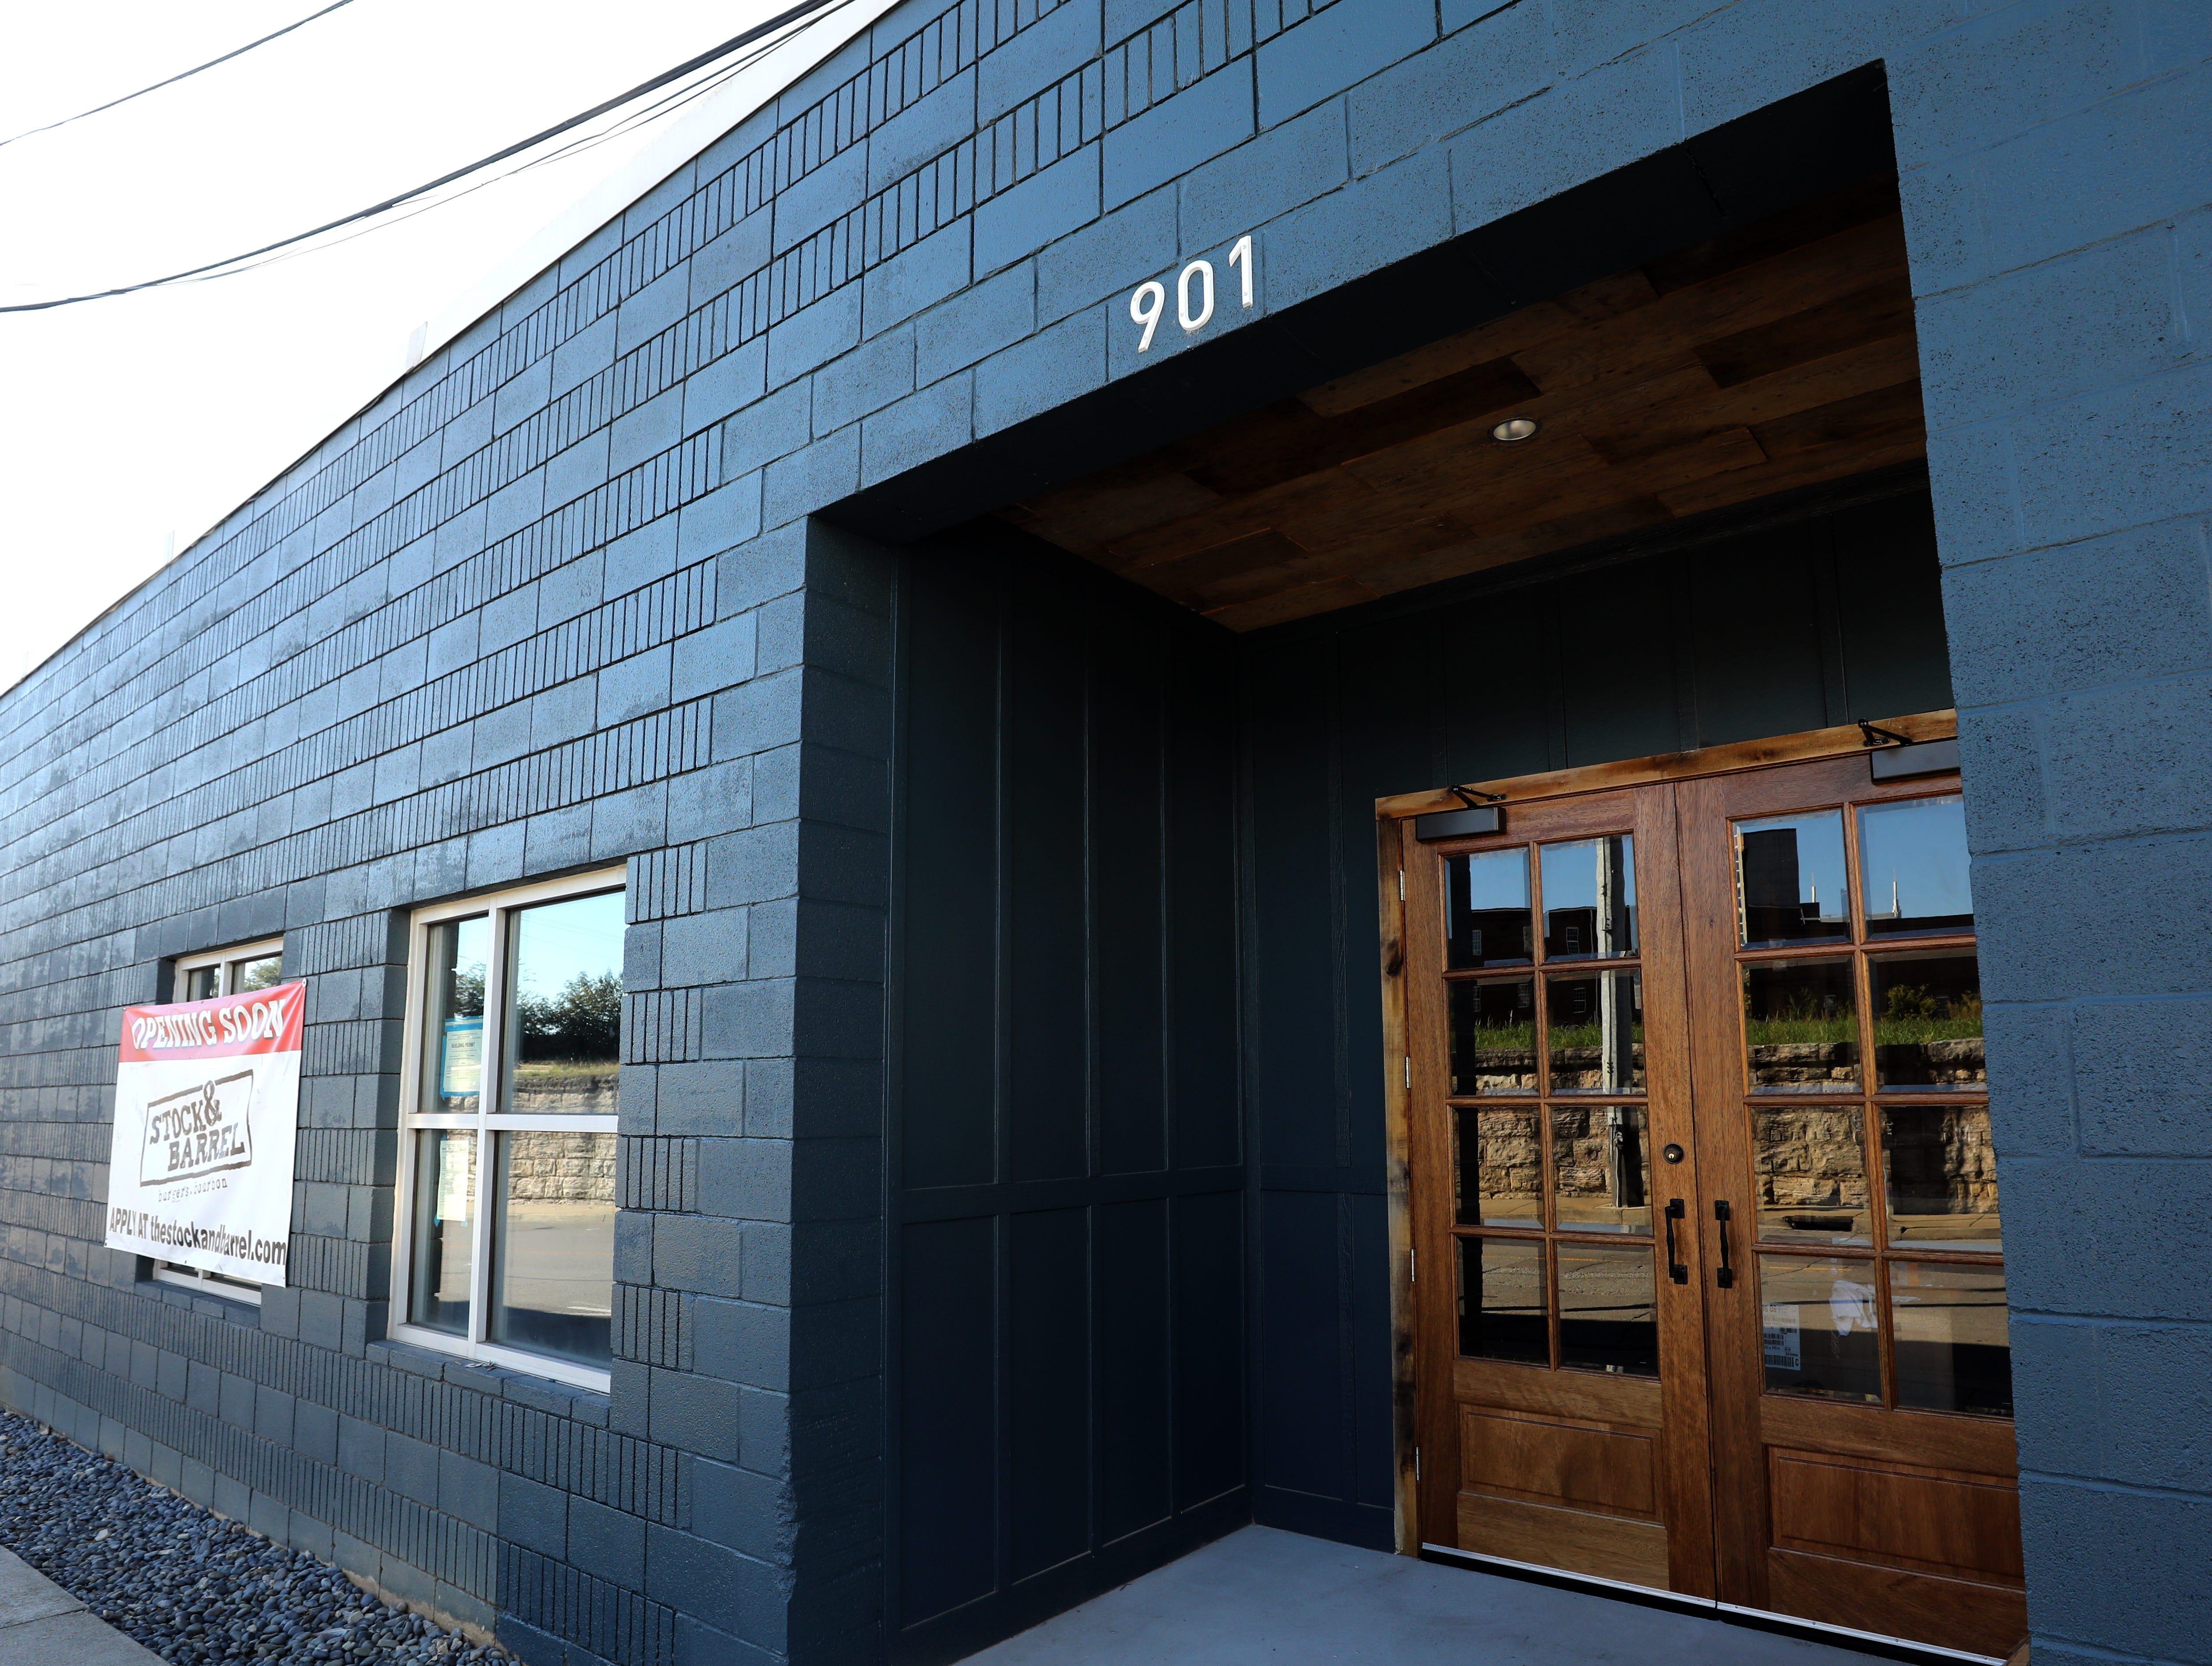 Stock & Barrel is to open at 901 Gleaves Street in Nashville in November.